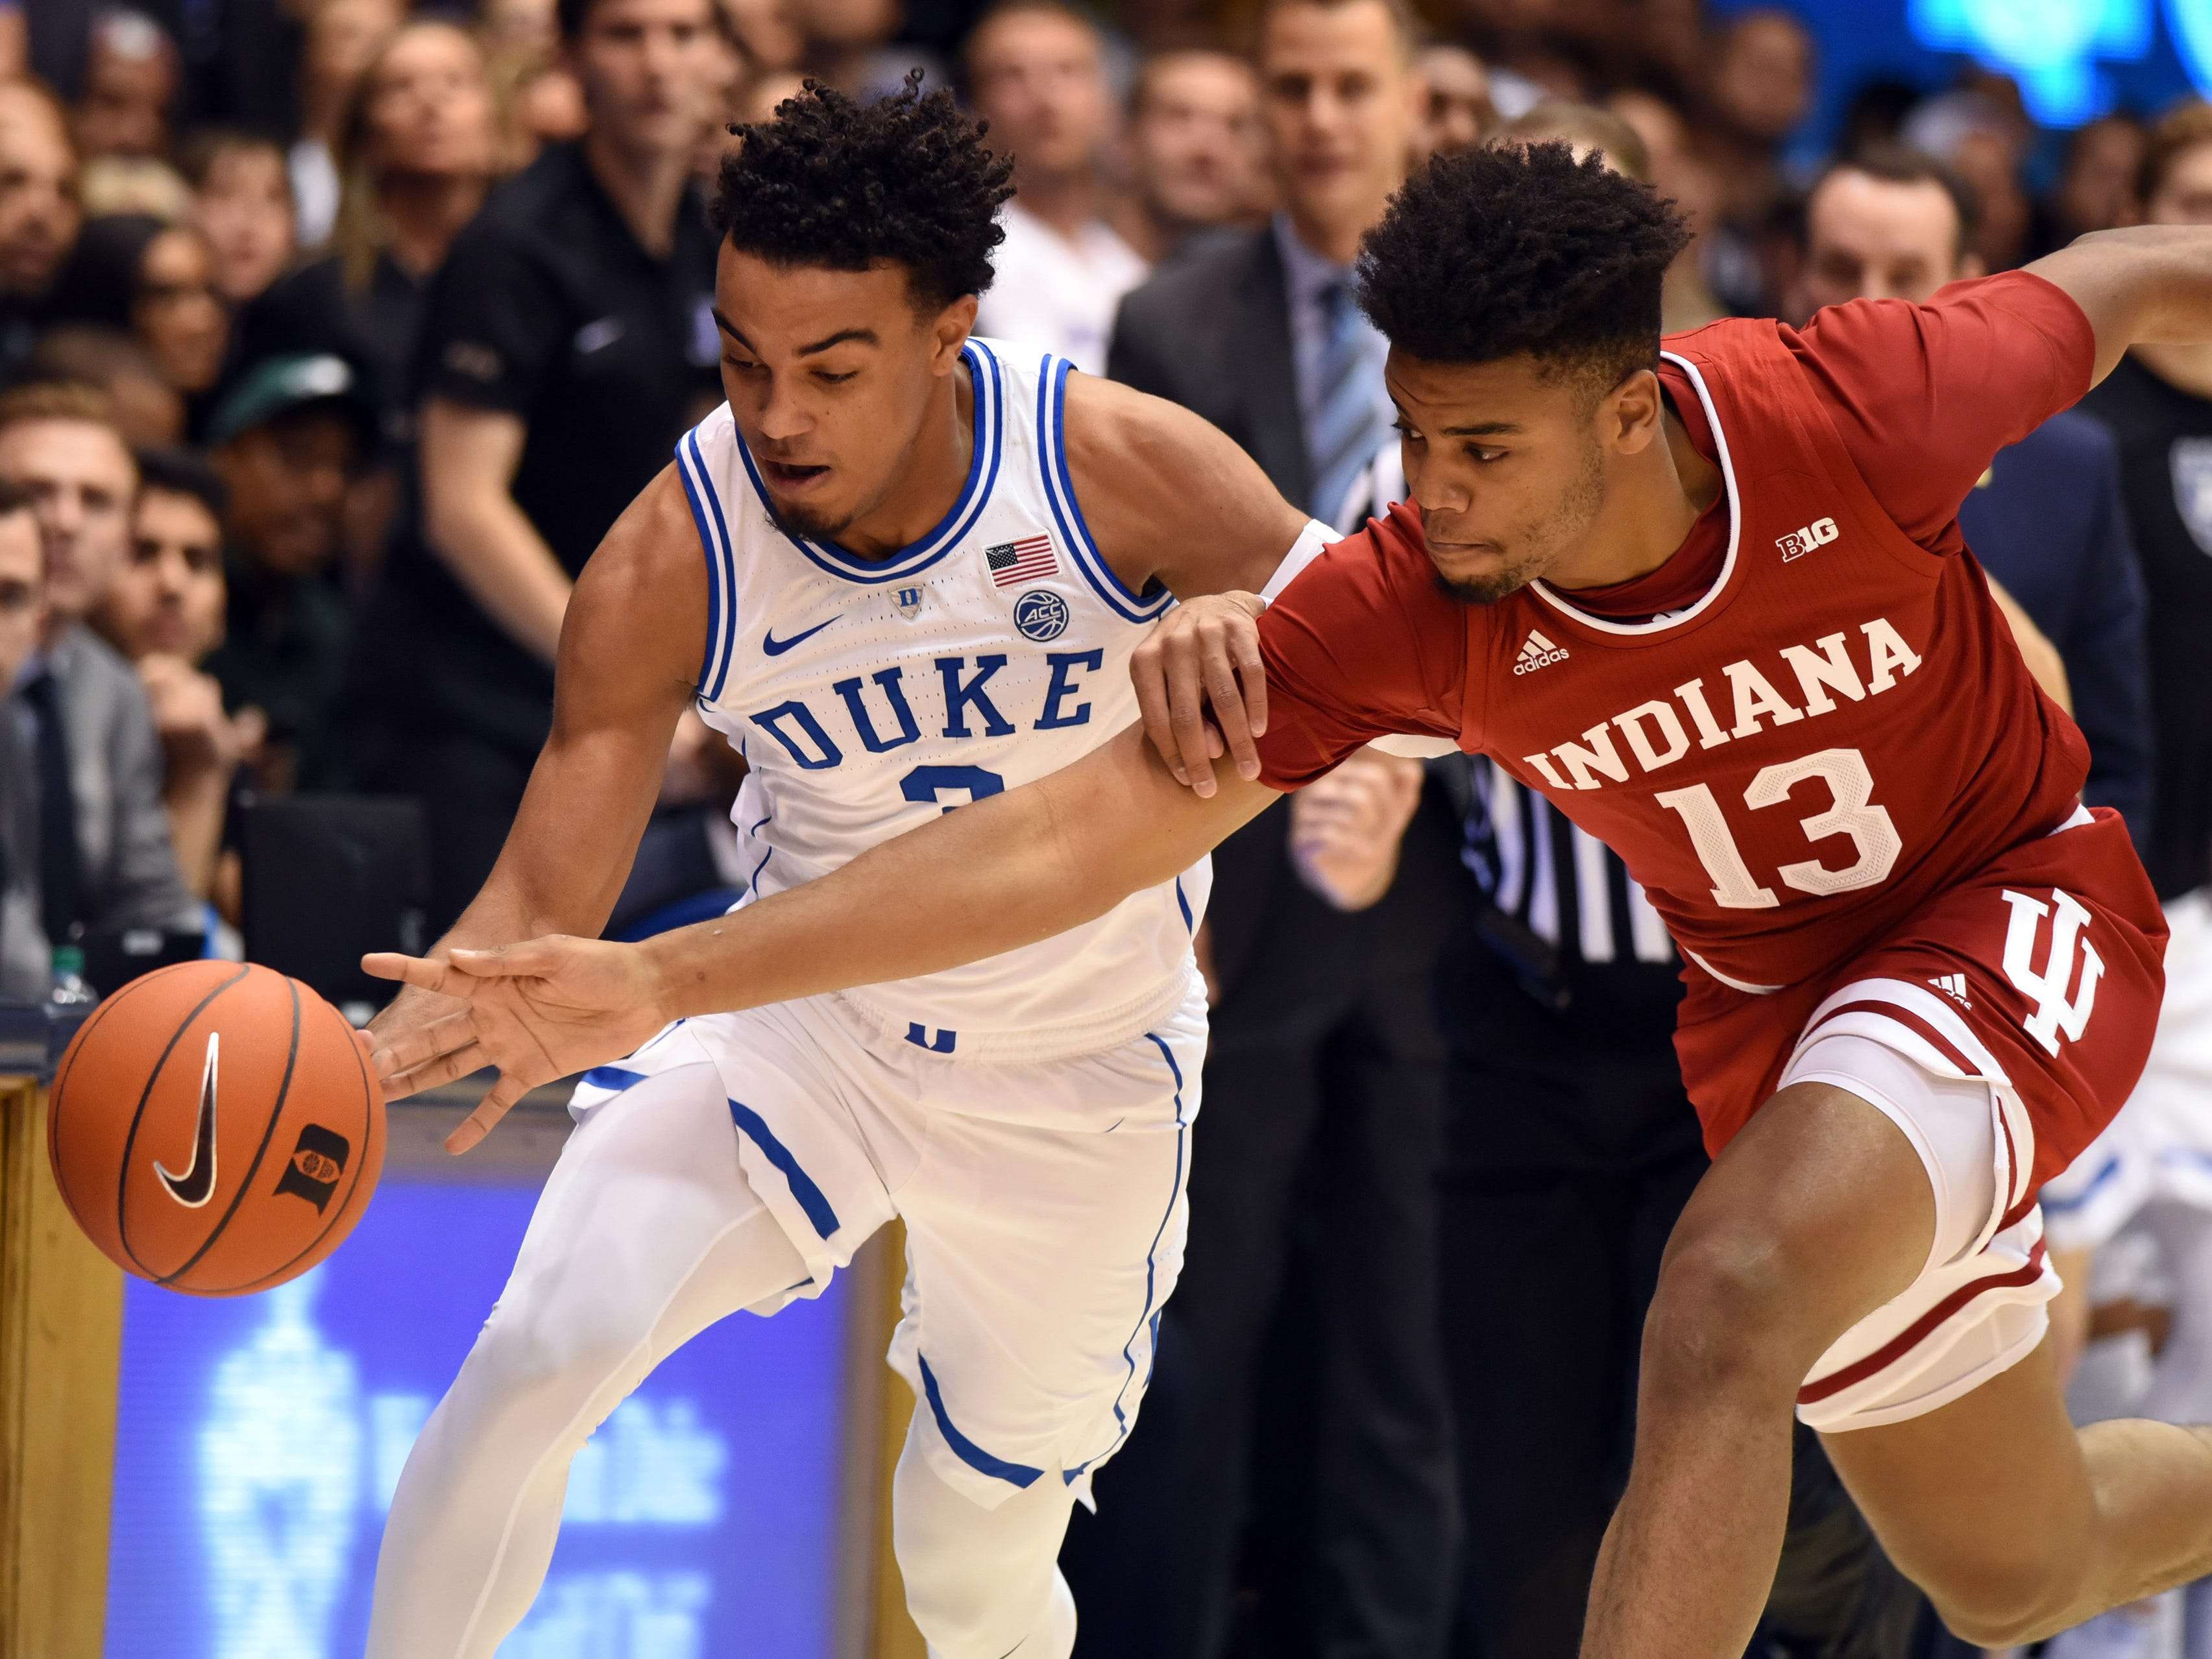 Nov 27, 2018; Durham, NC, USA; Indiana Hoosiers forward Juwan Morgan (13) and Duke Blue Devils guard Tre Jones (3) fight for a loose ball during the first half at Cameron Indoor Stadium.